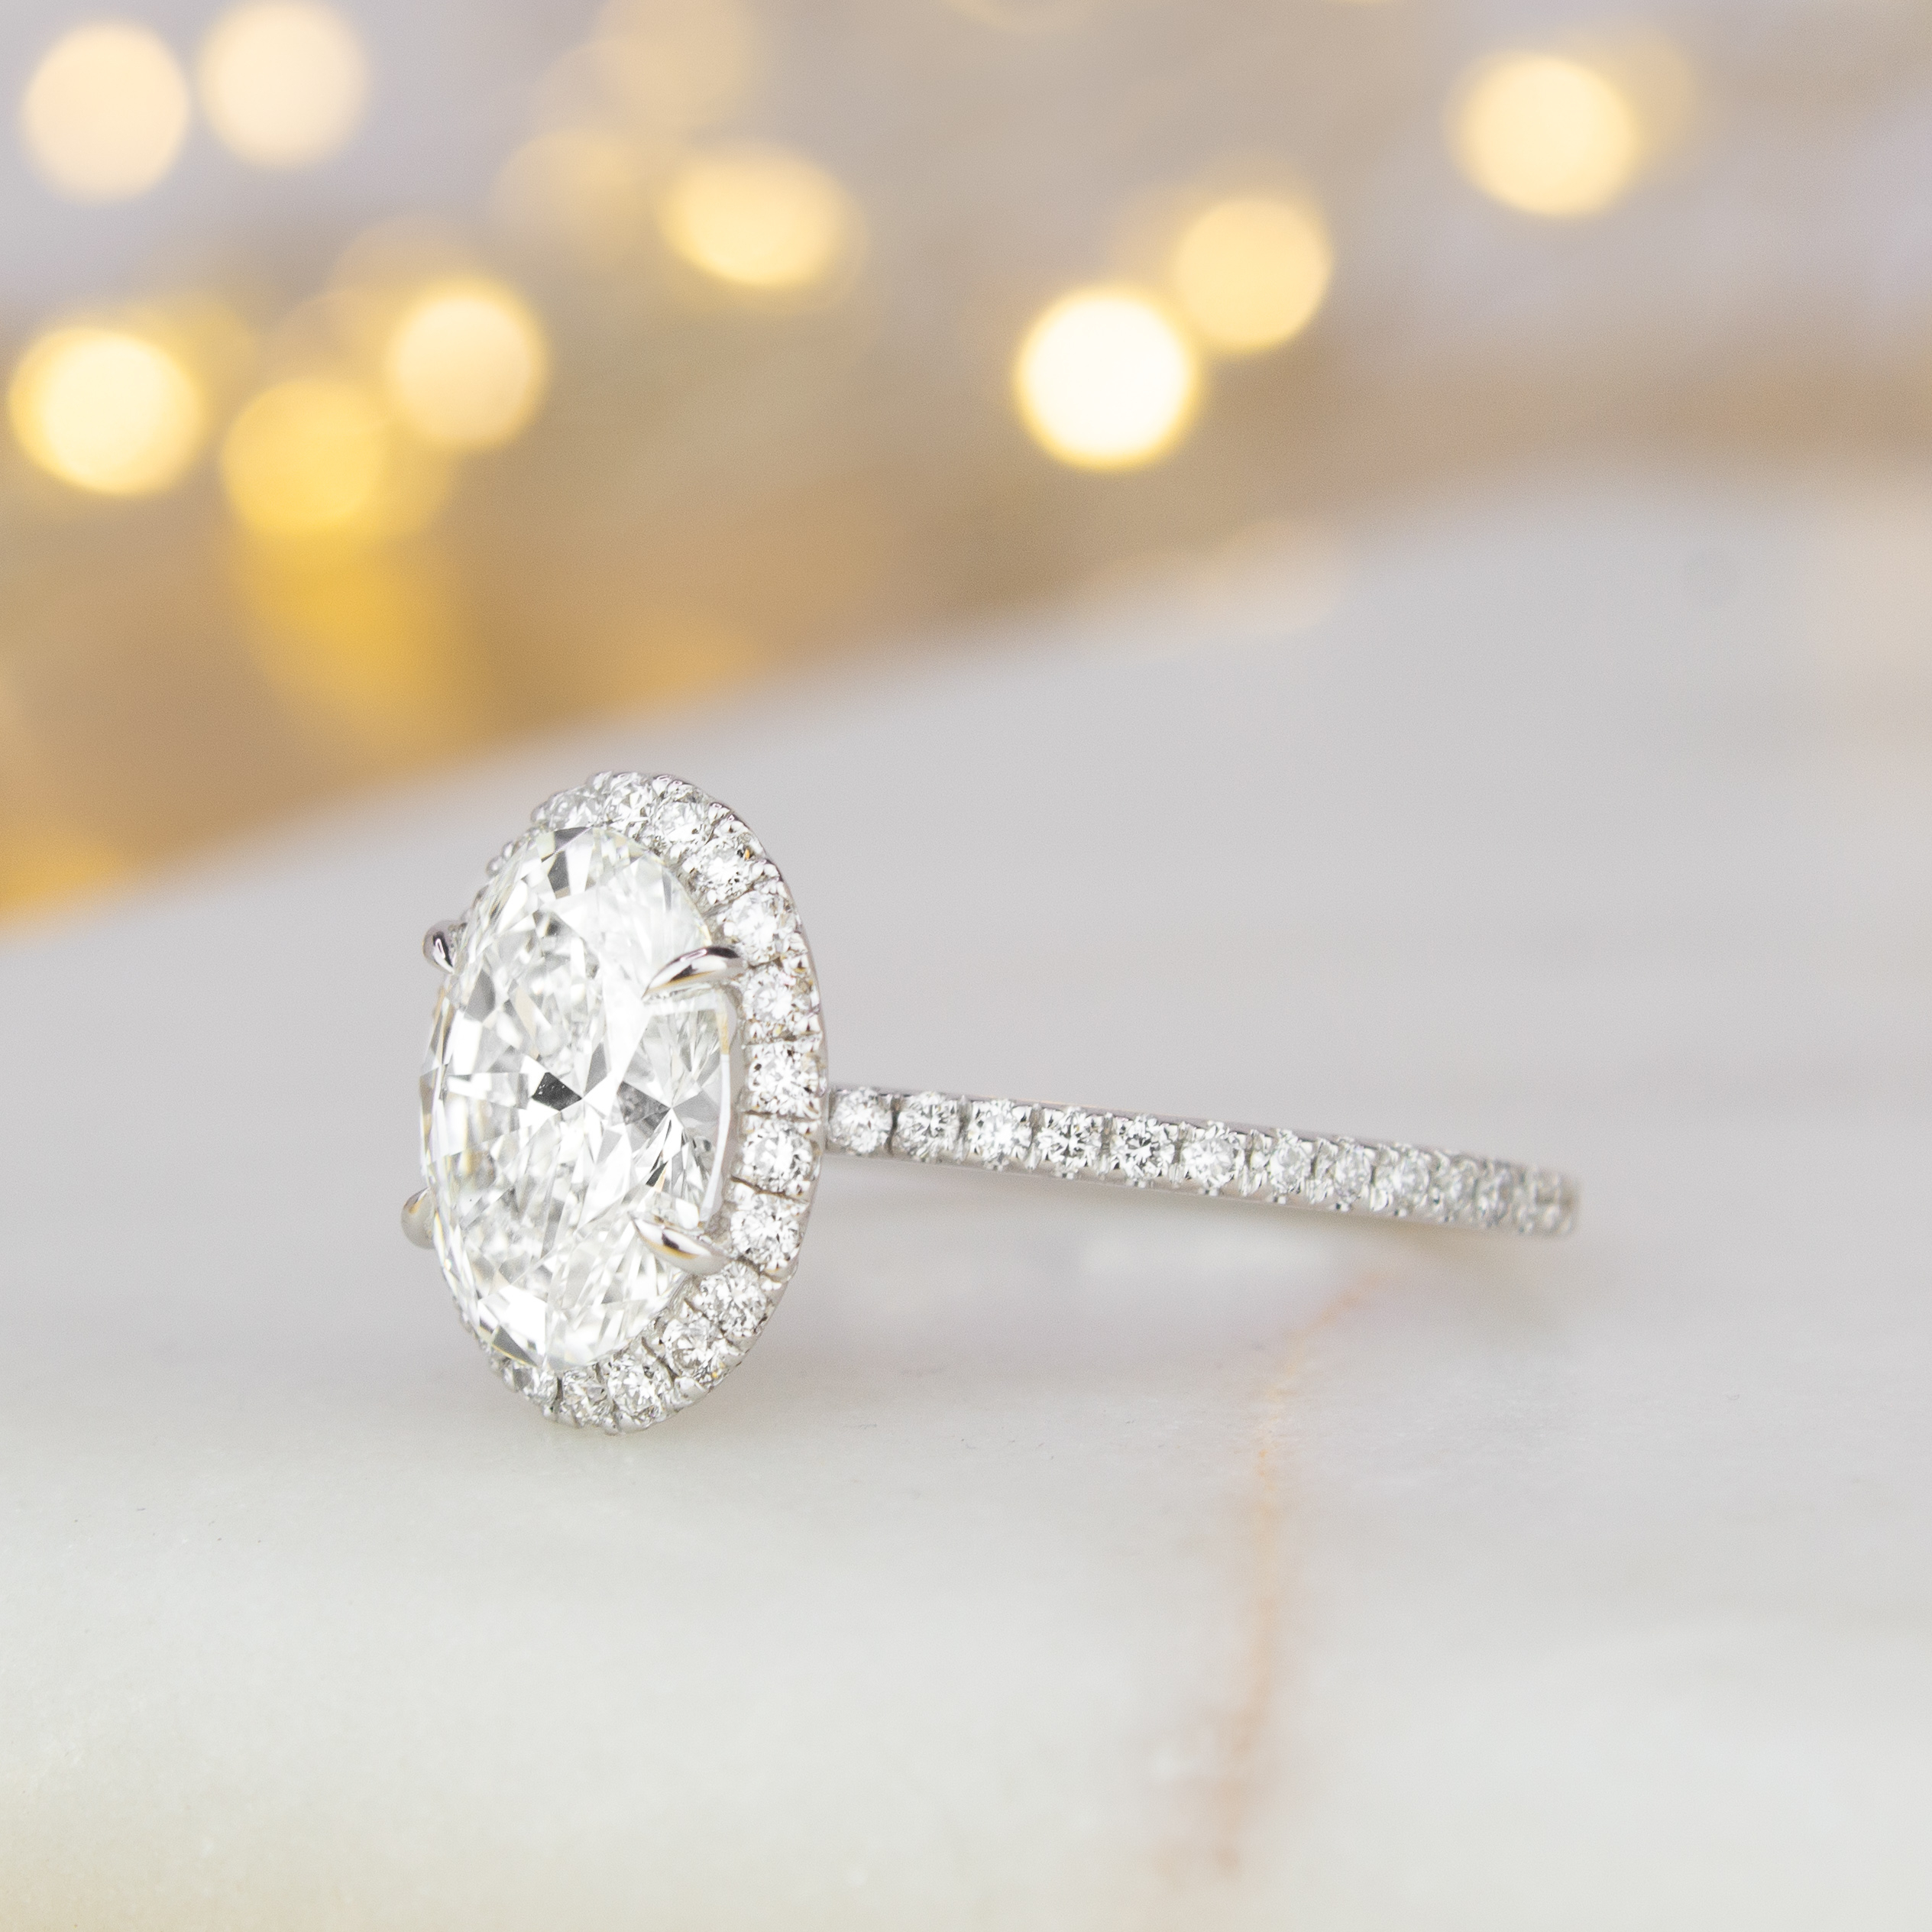 Sparkling Pavé Engagement Rings | Brilliant Earth Throughout Most Popular Diamond Double Row Contour Tiara Anniversary Bands In White Gold (Gallery 21 of 25)